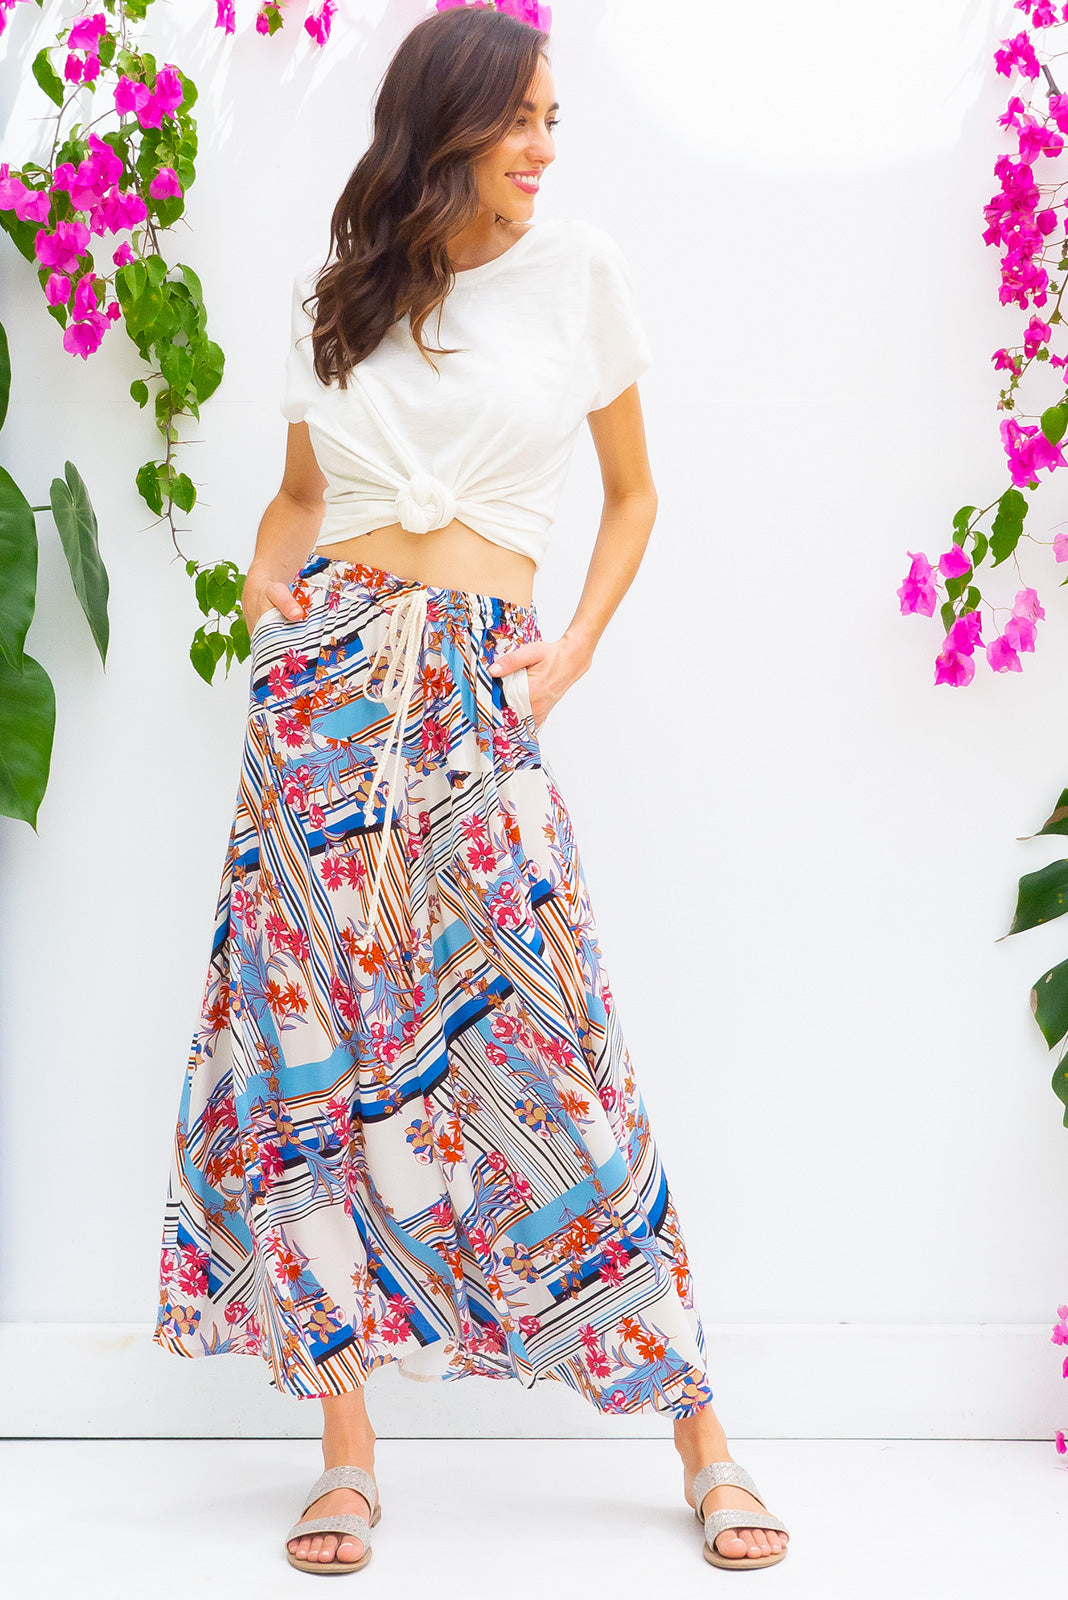 Catalina Vintage Blues Maxi Skirt with a elastic waist band and pockets in a gorgeous retro inspired bohemian cool toned print